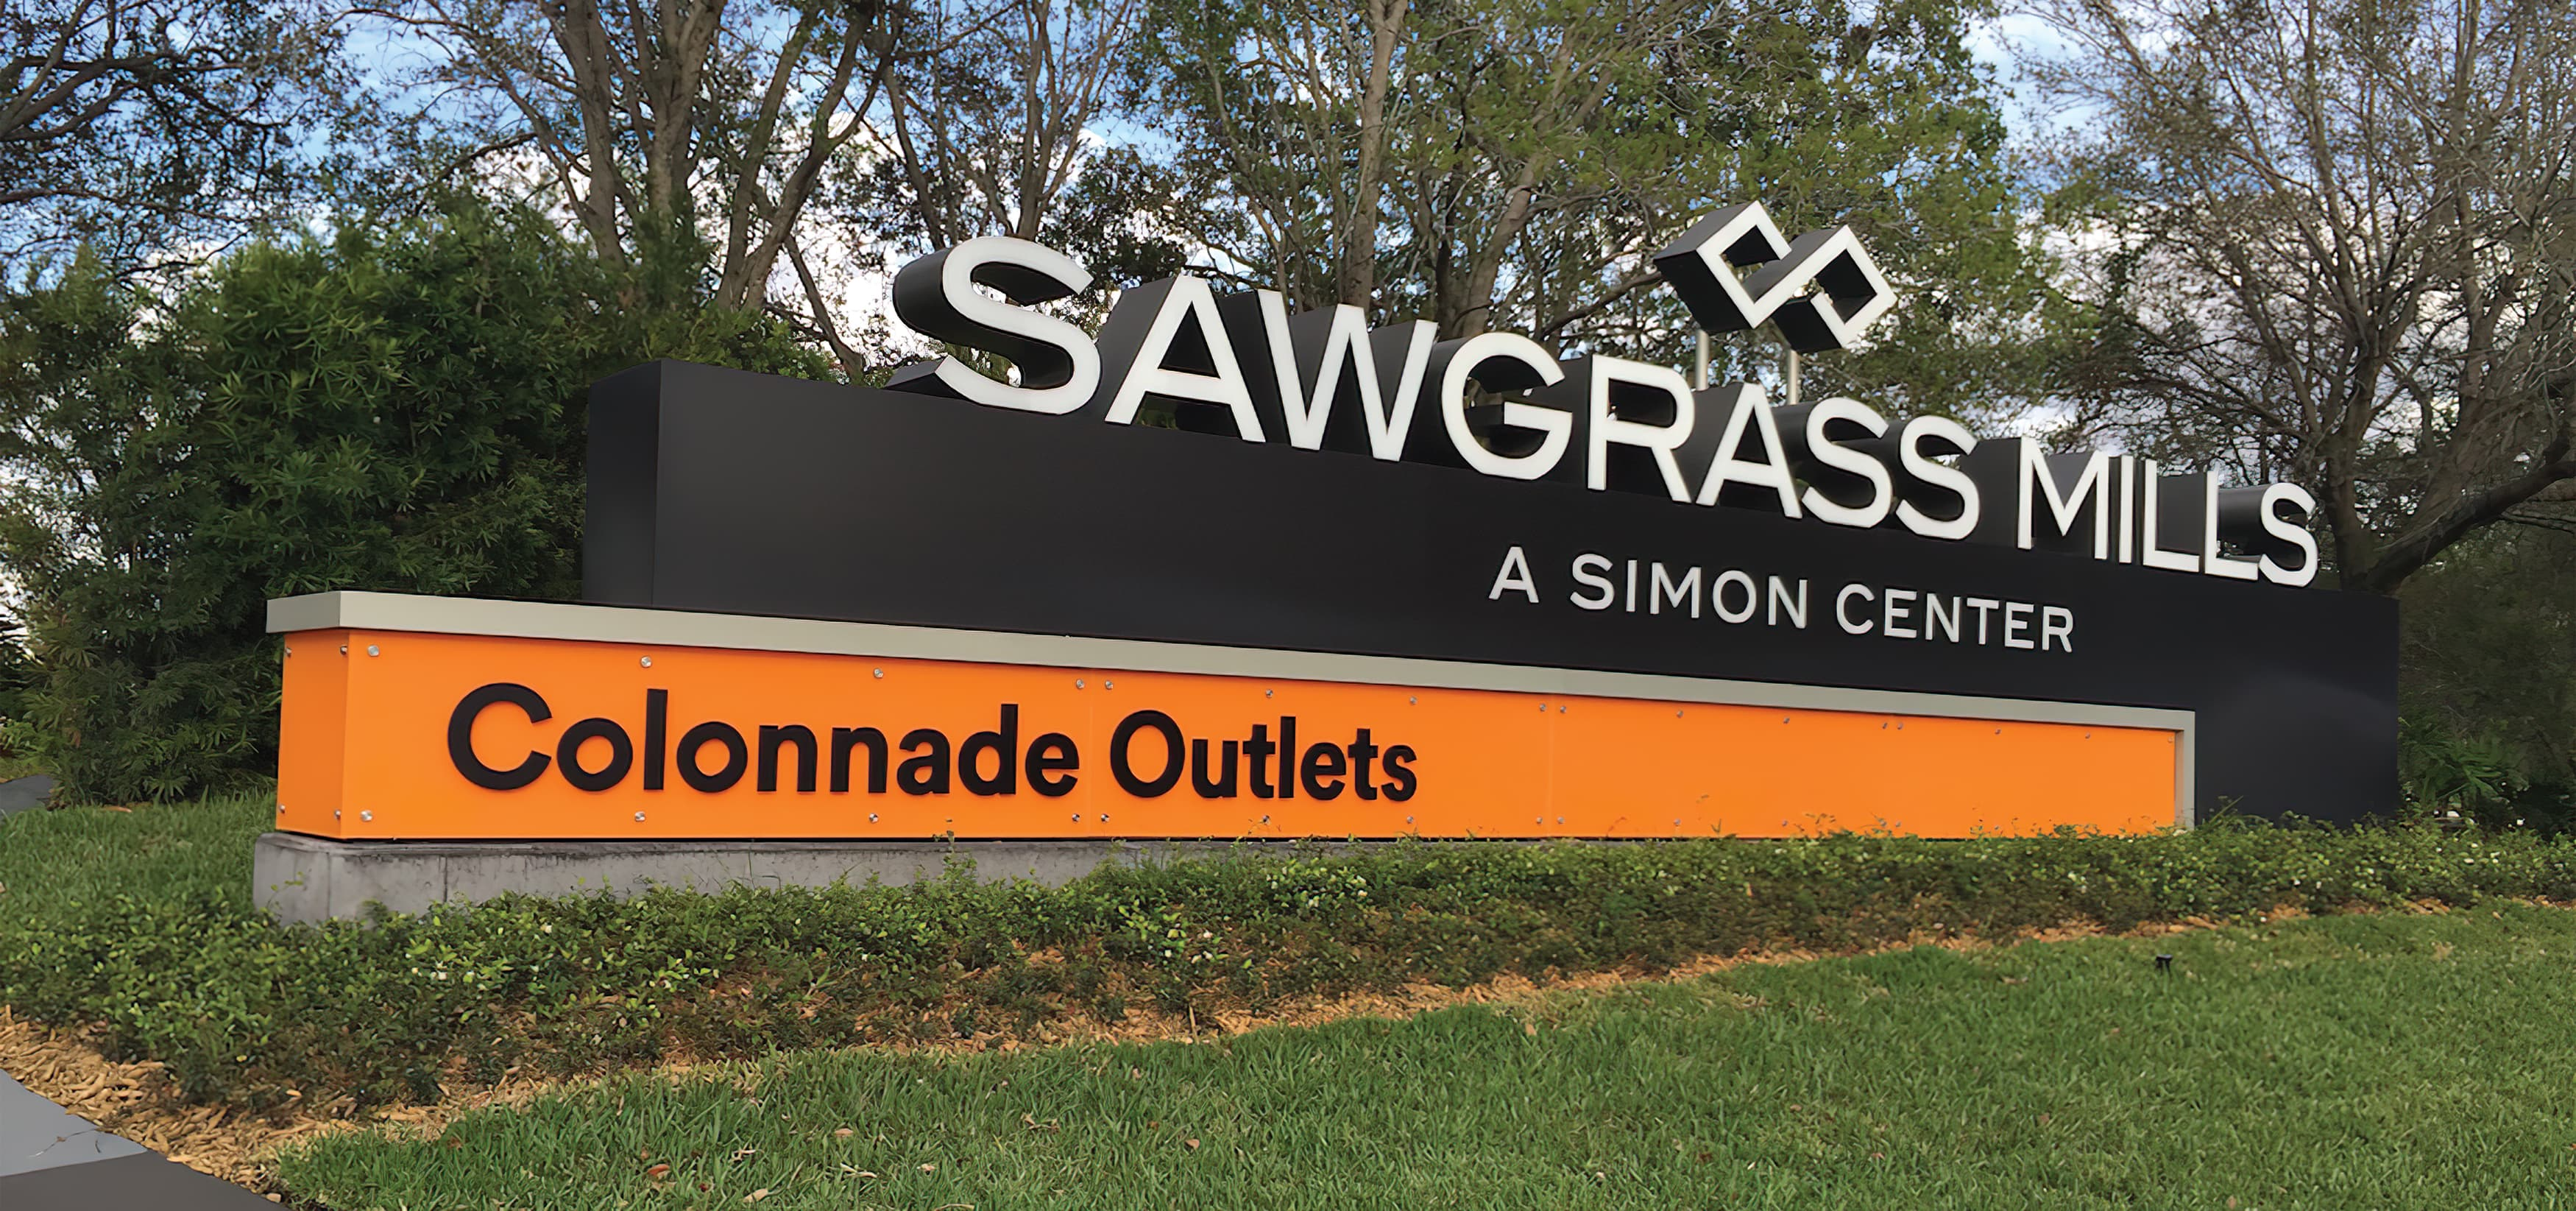 RSM Design worked to develop wayfinding signage, environmental graphics, and placemaking elements for Sawgrass Mills, a Simon Center located in Sunrise, Florida. Project Identity Monument.